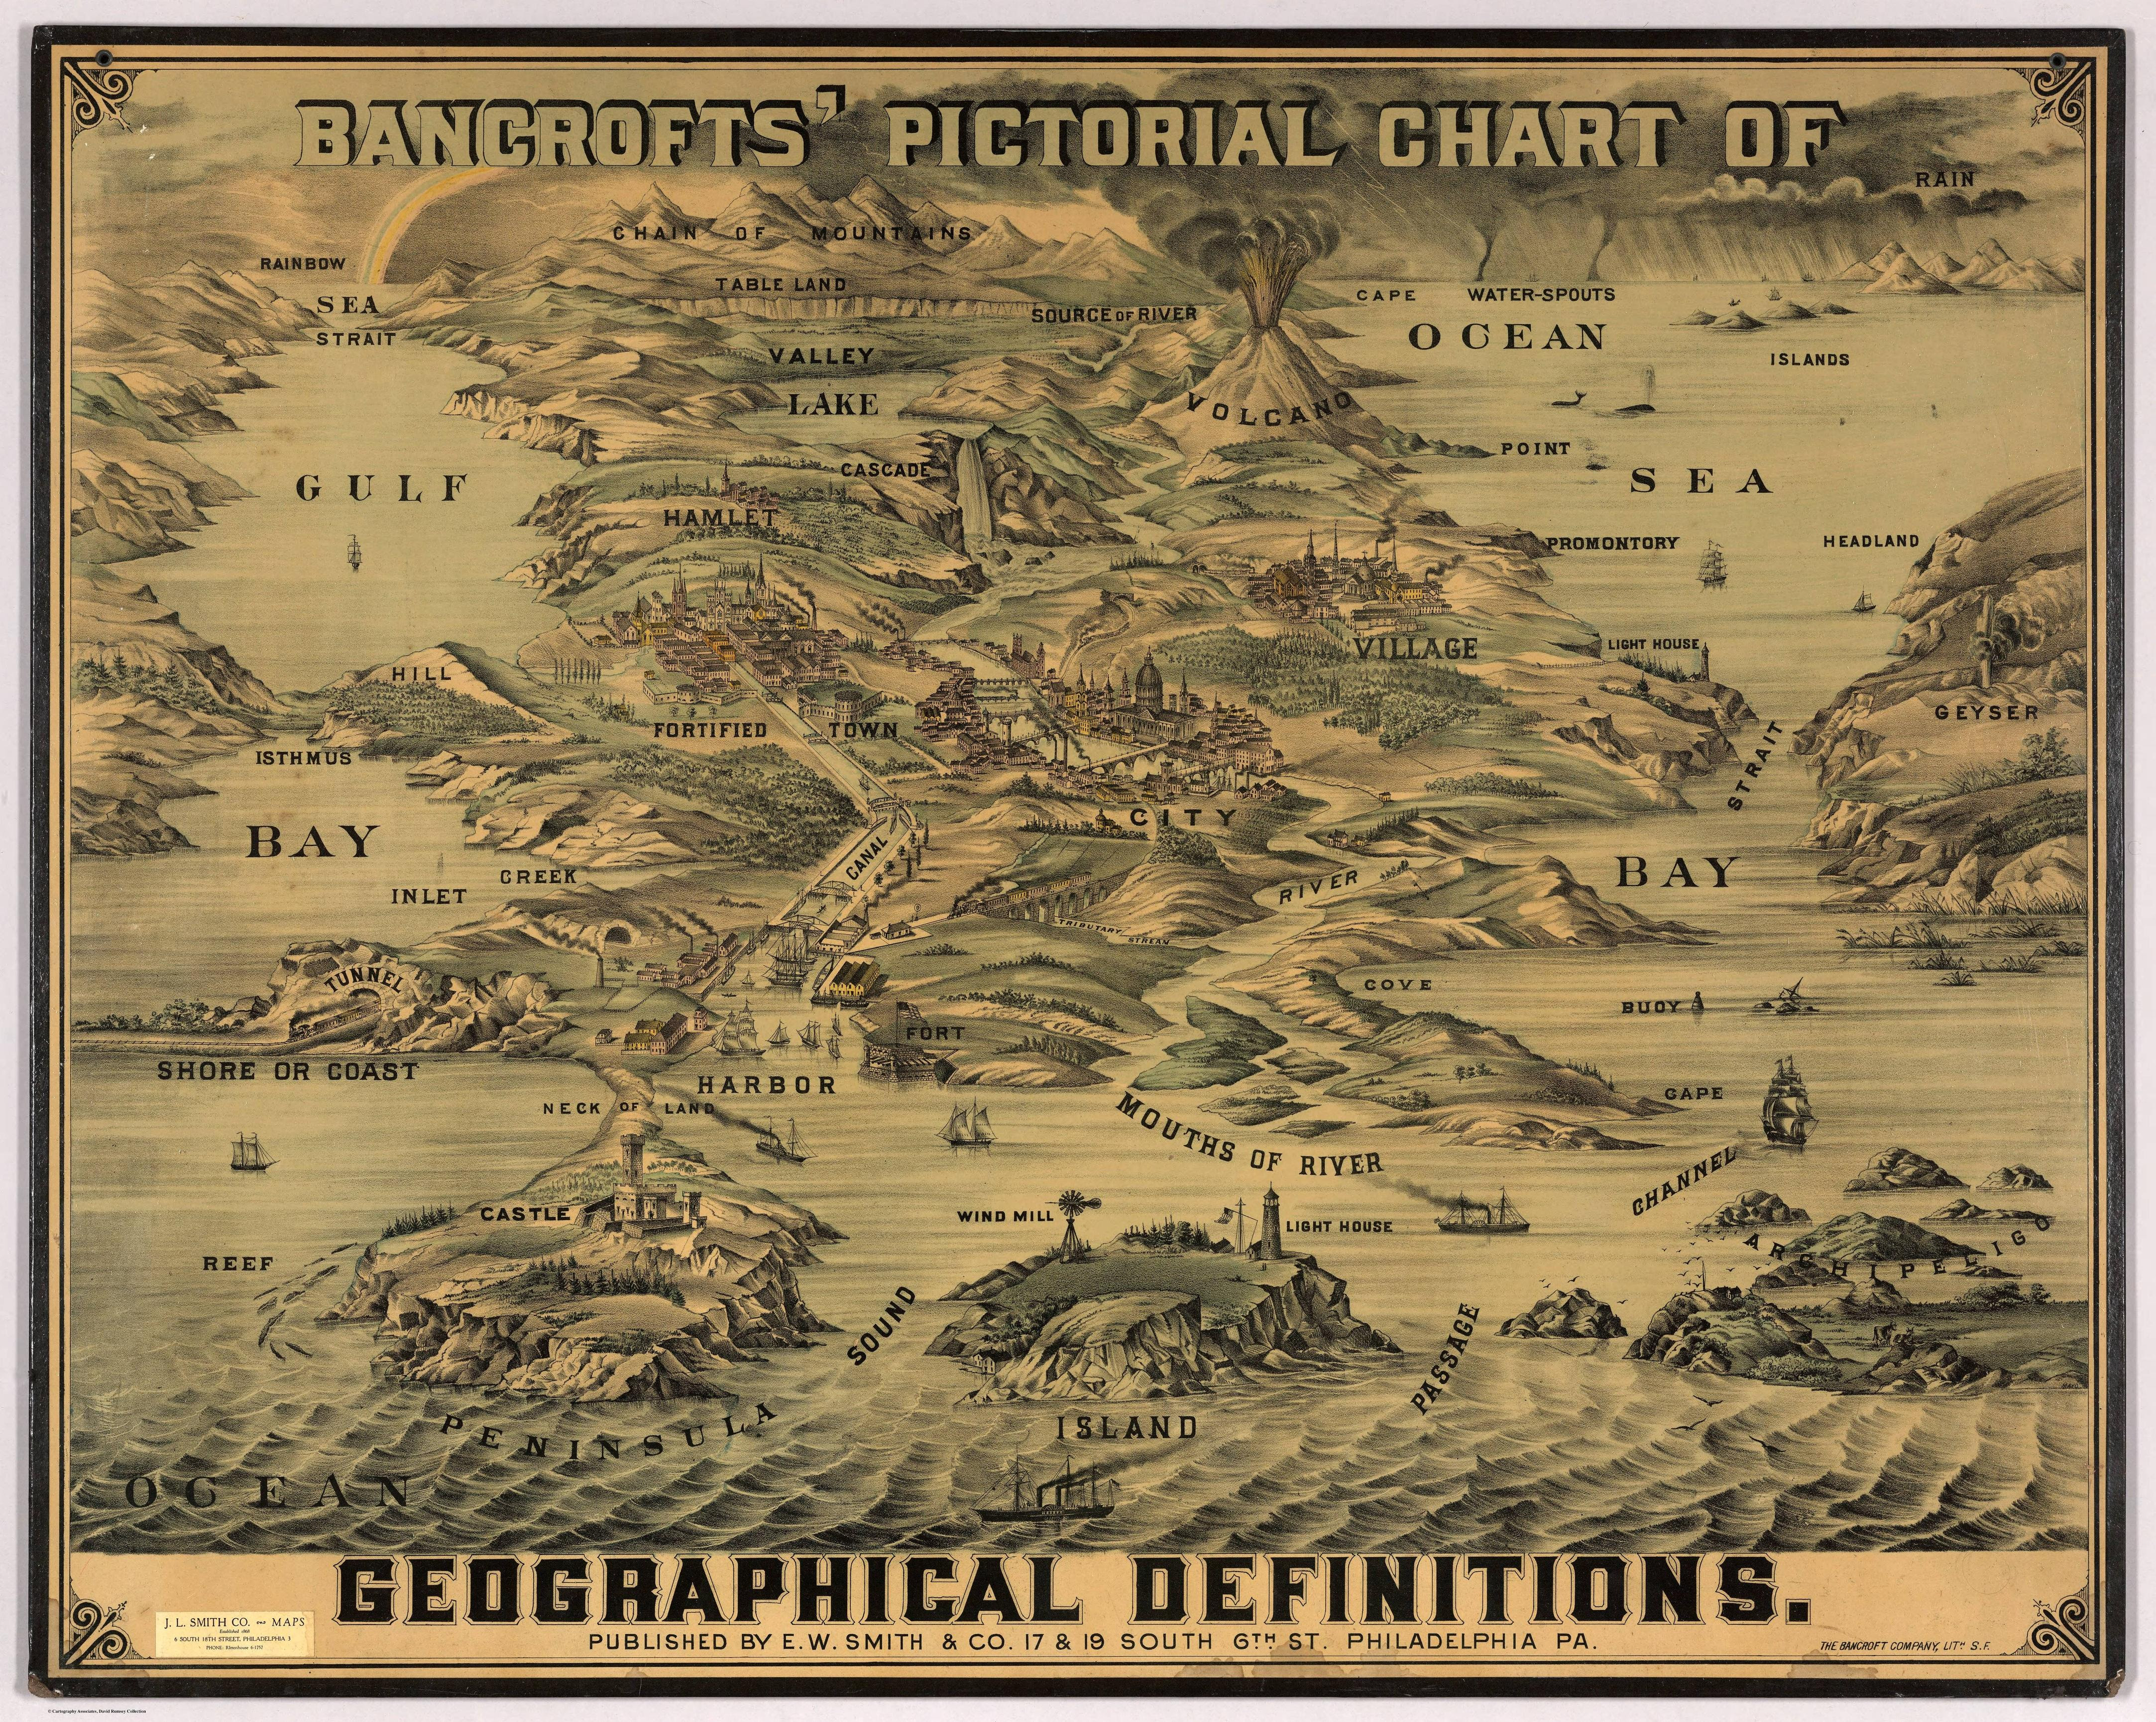 Bancrofts' pictorial chart of geographical definitions, 1870